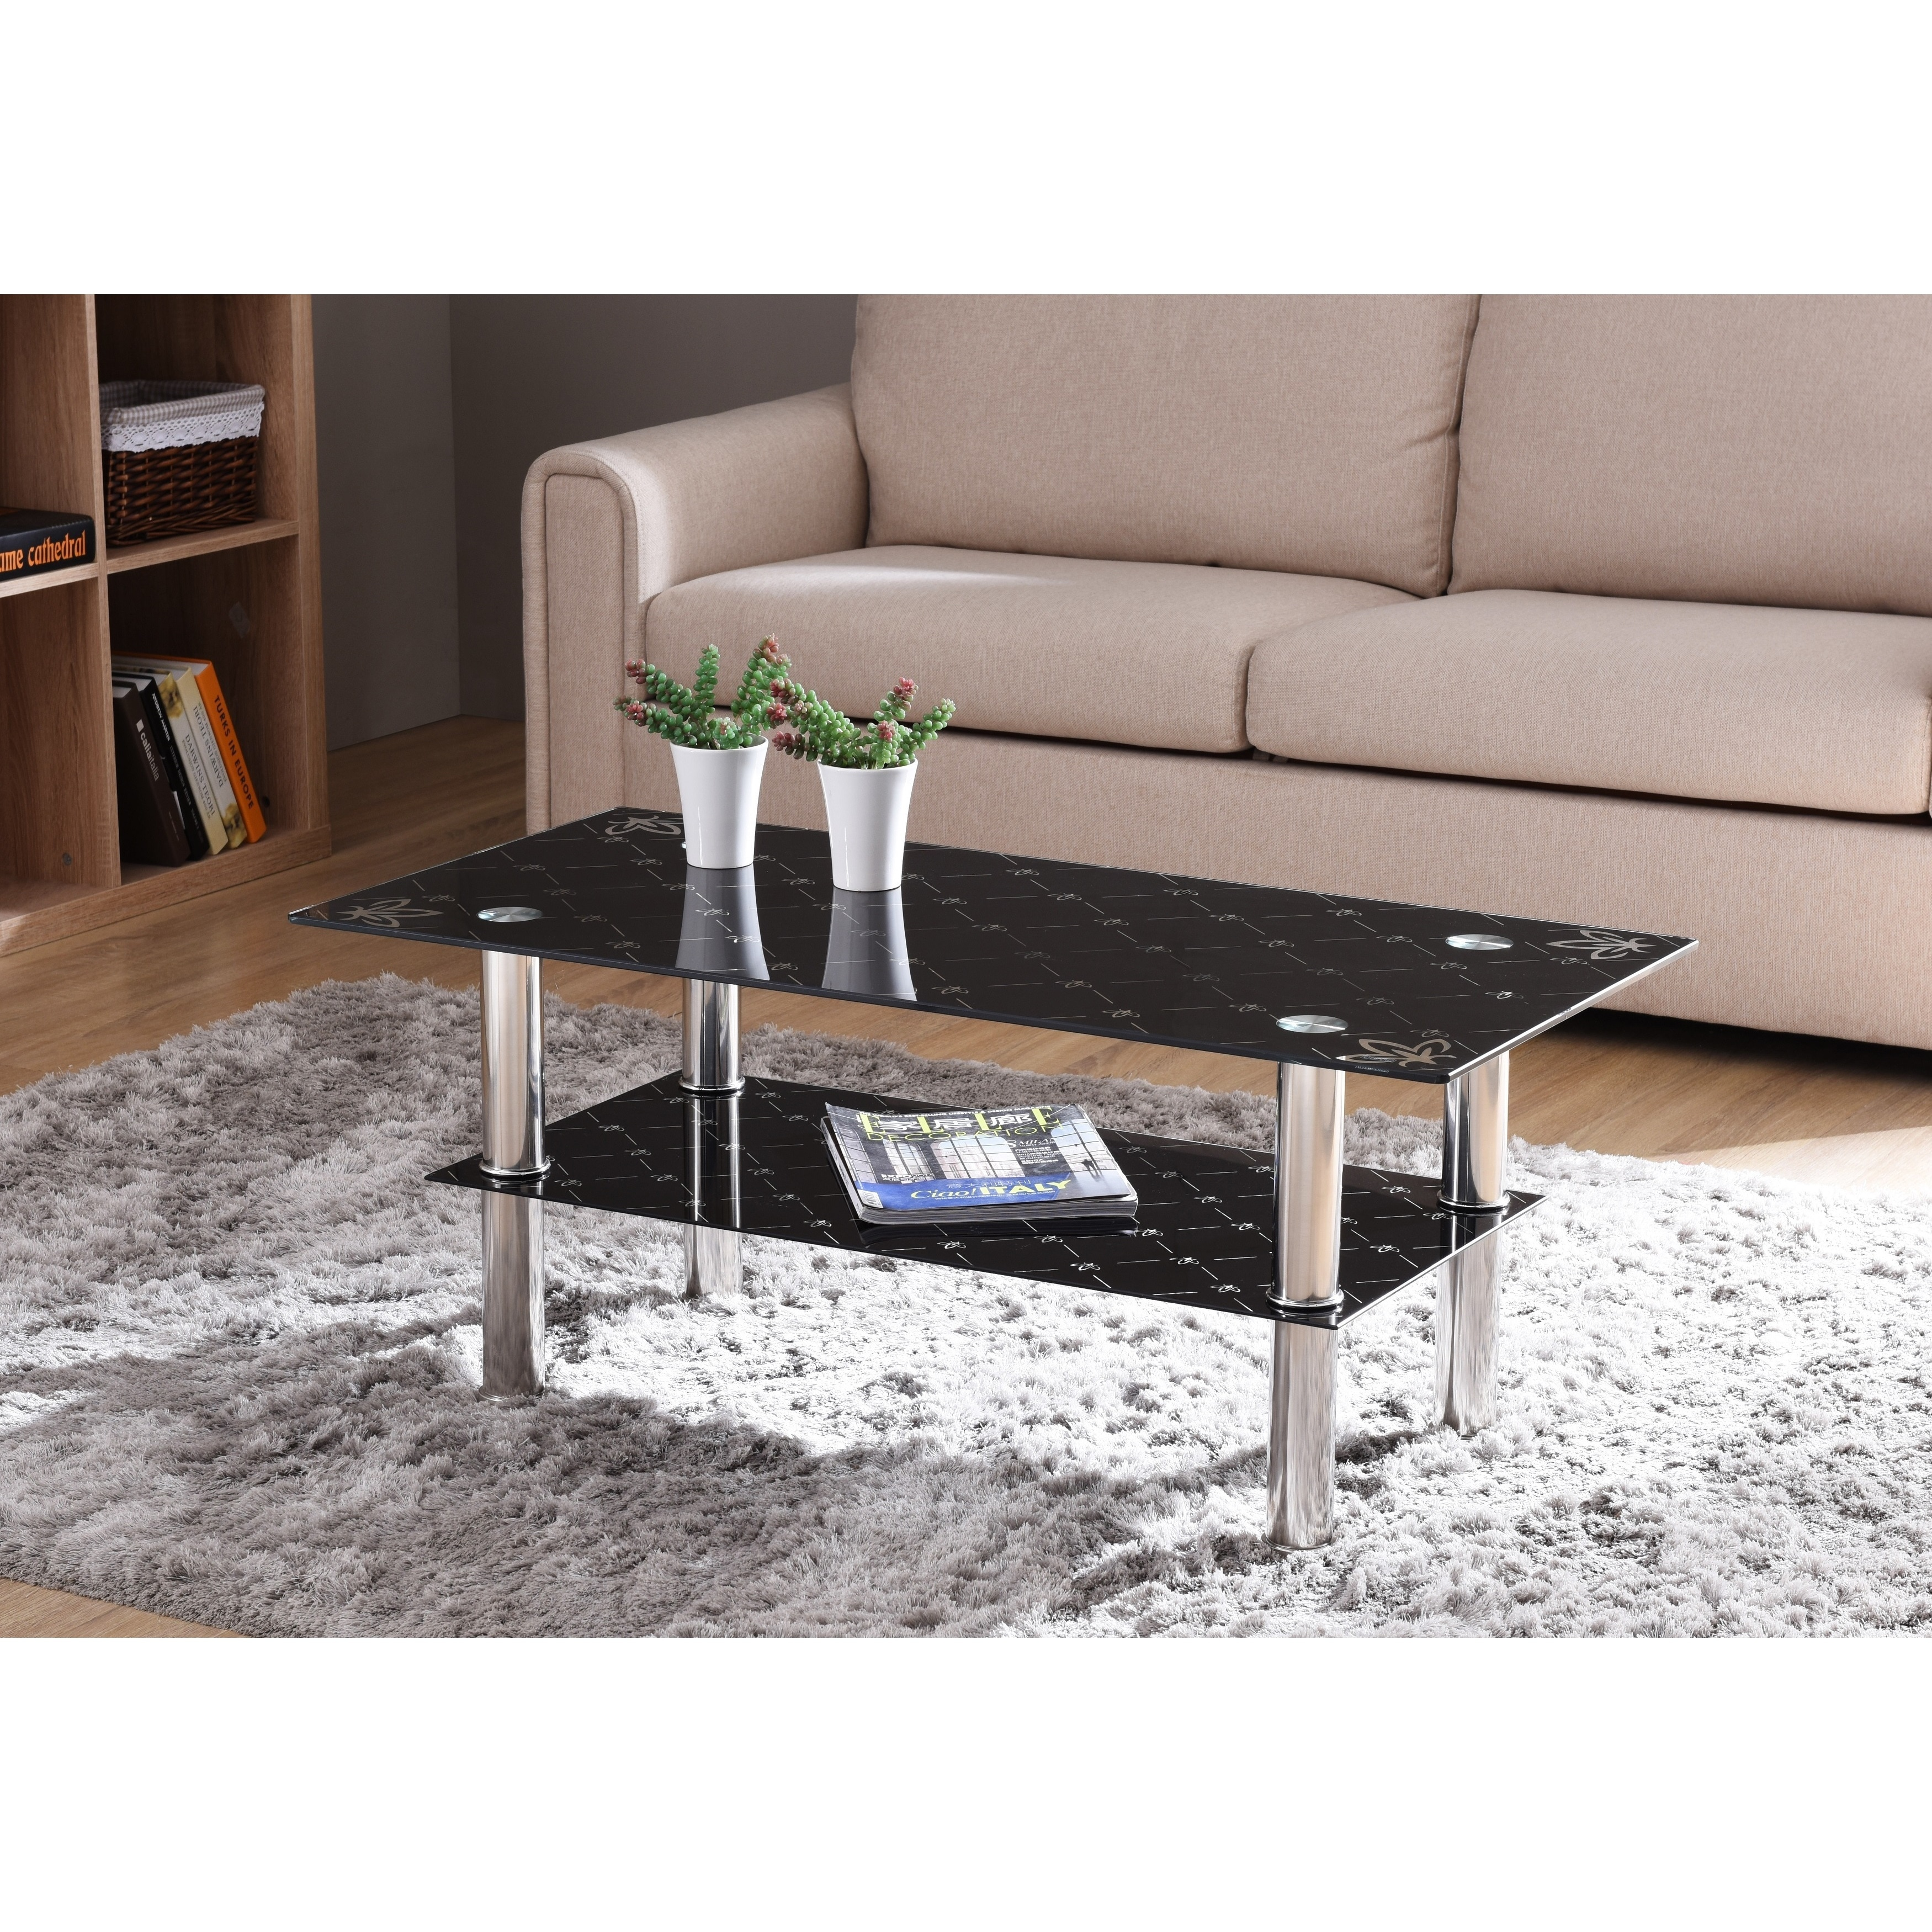 Tempered Gl For Coffee Table Top New House Designs